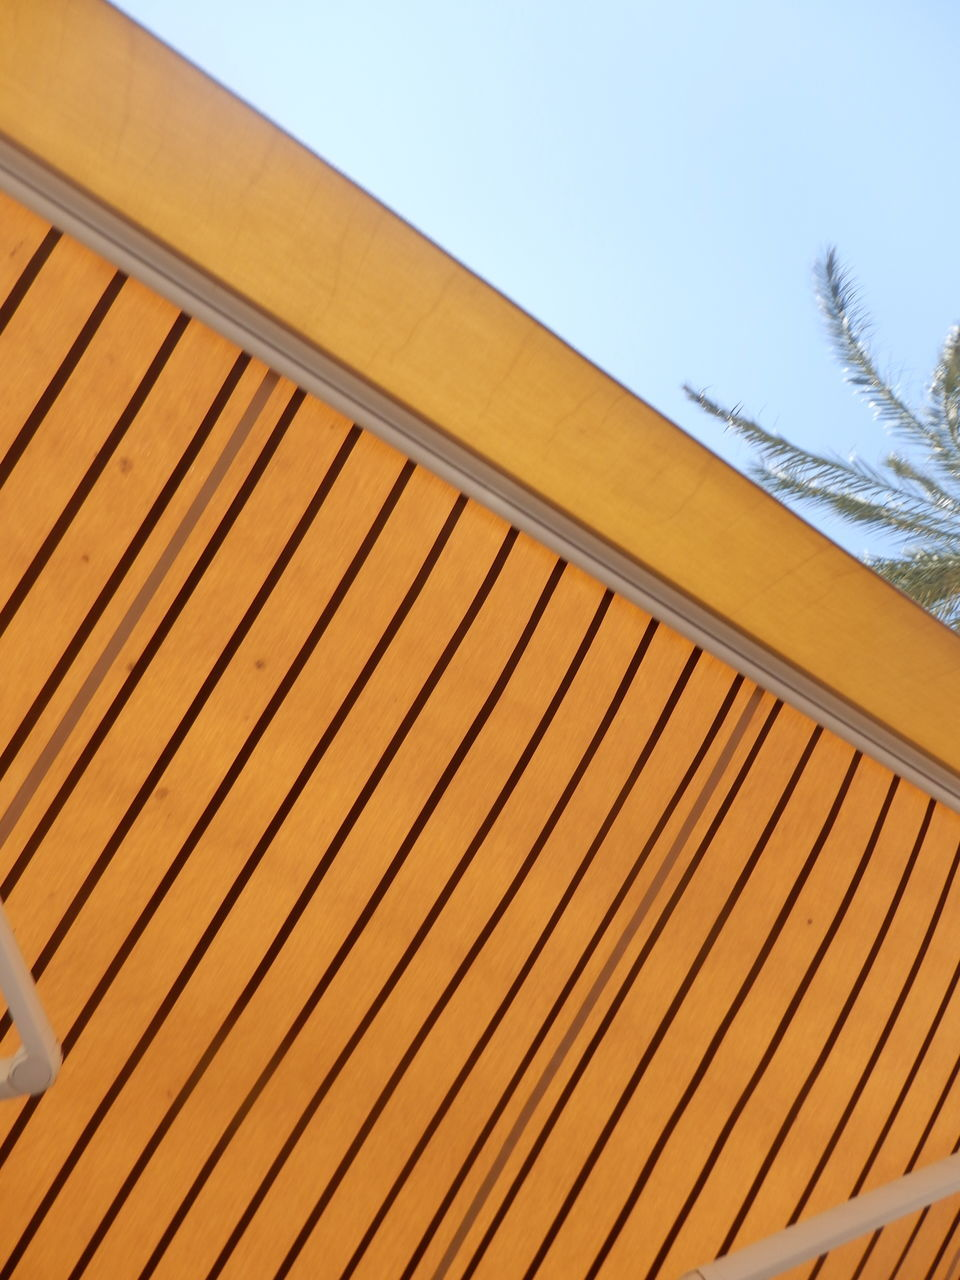 day, outdoors, no people, low angle view, yellow, sky, architecture, built structure, nature, tree, close-up